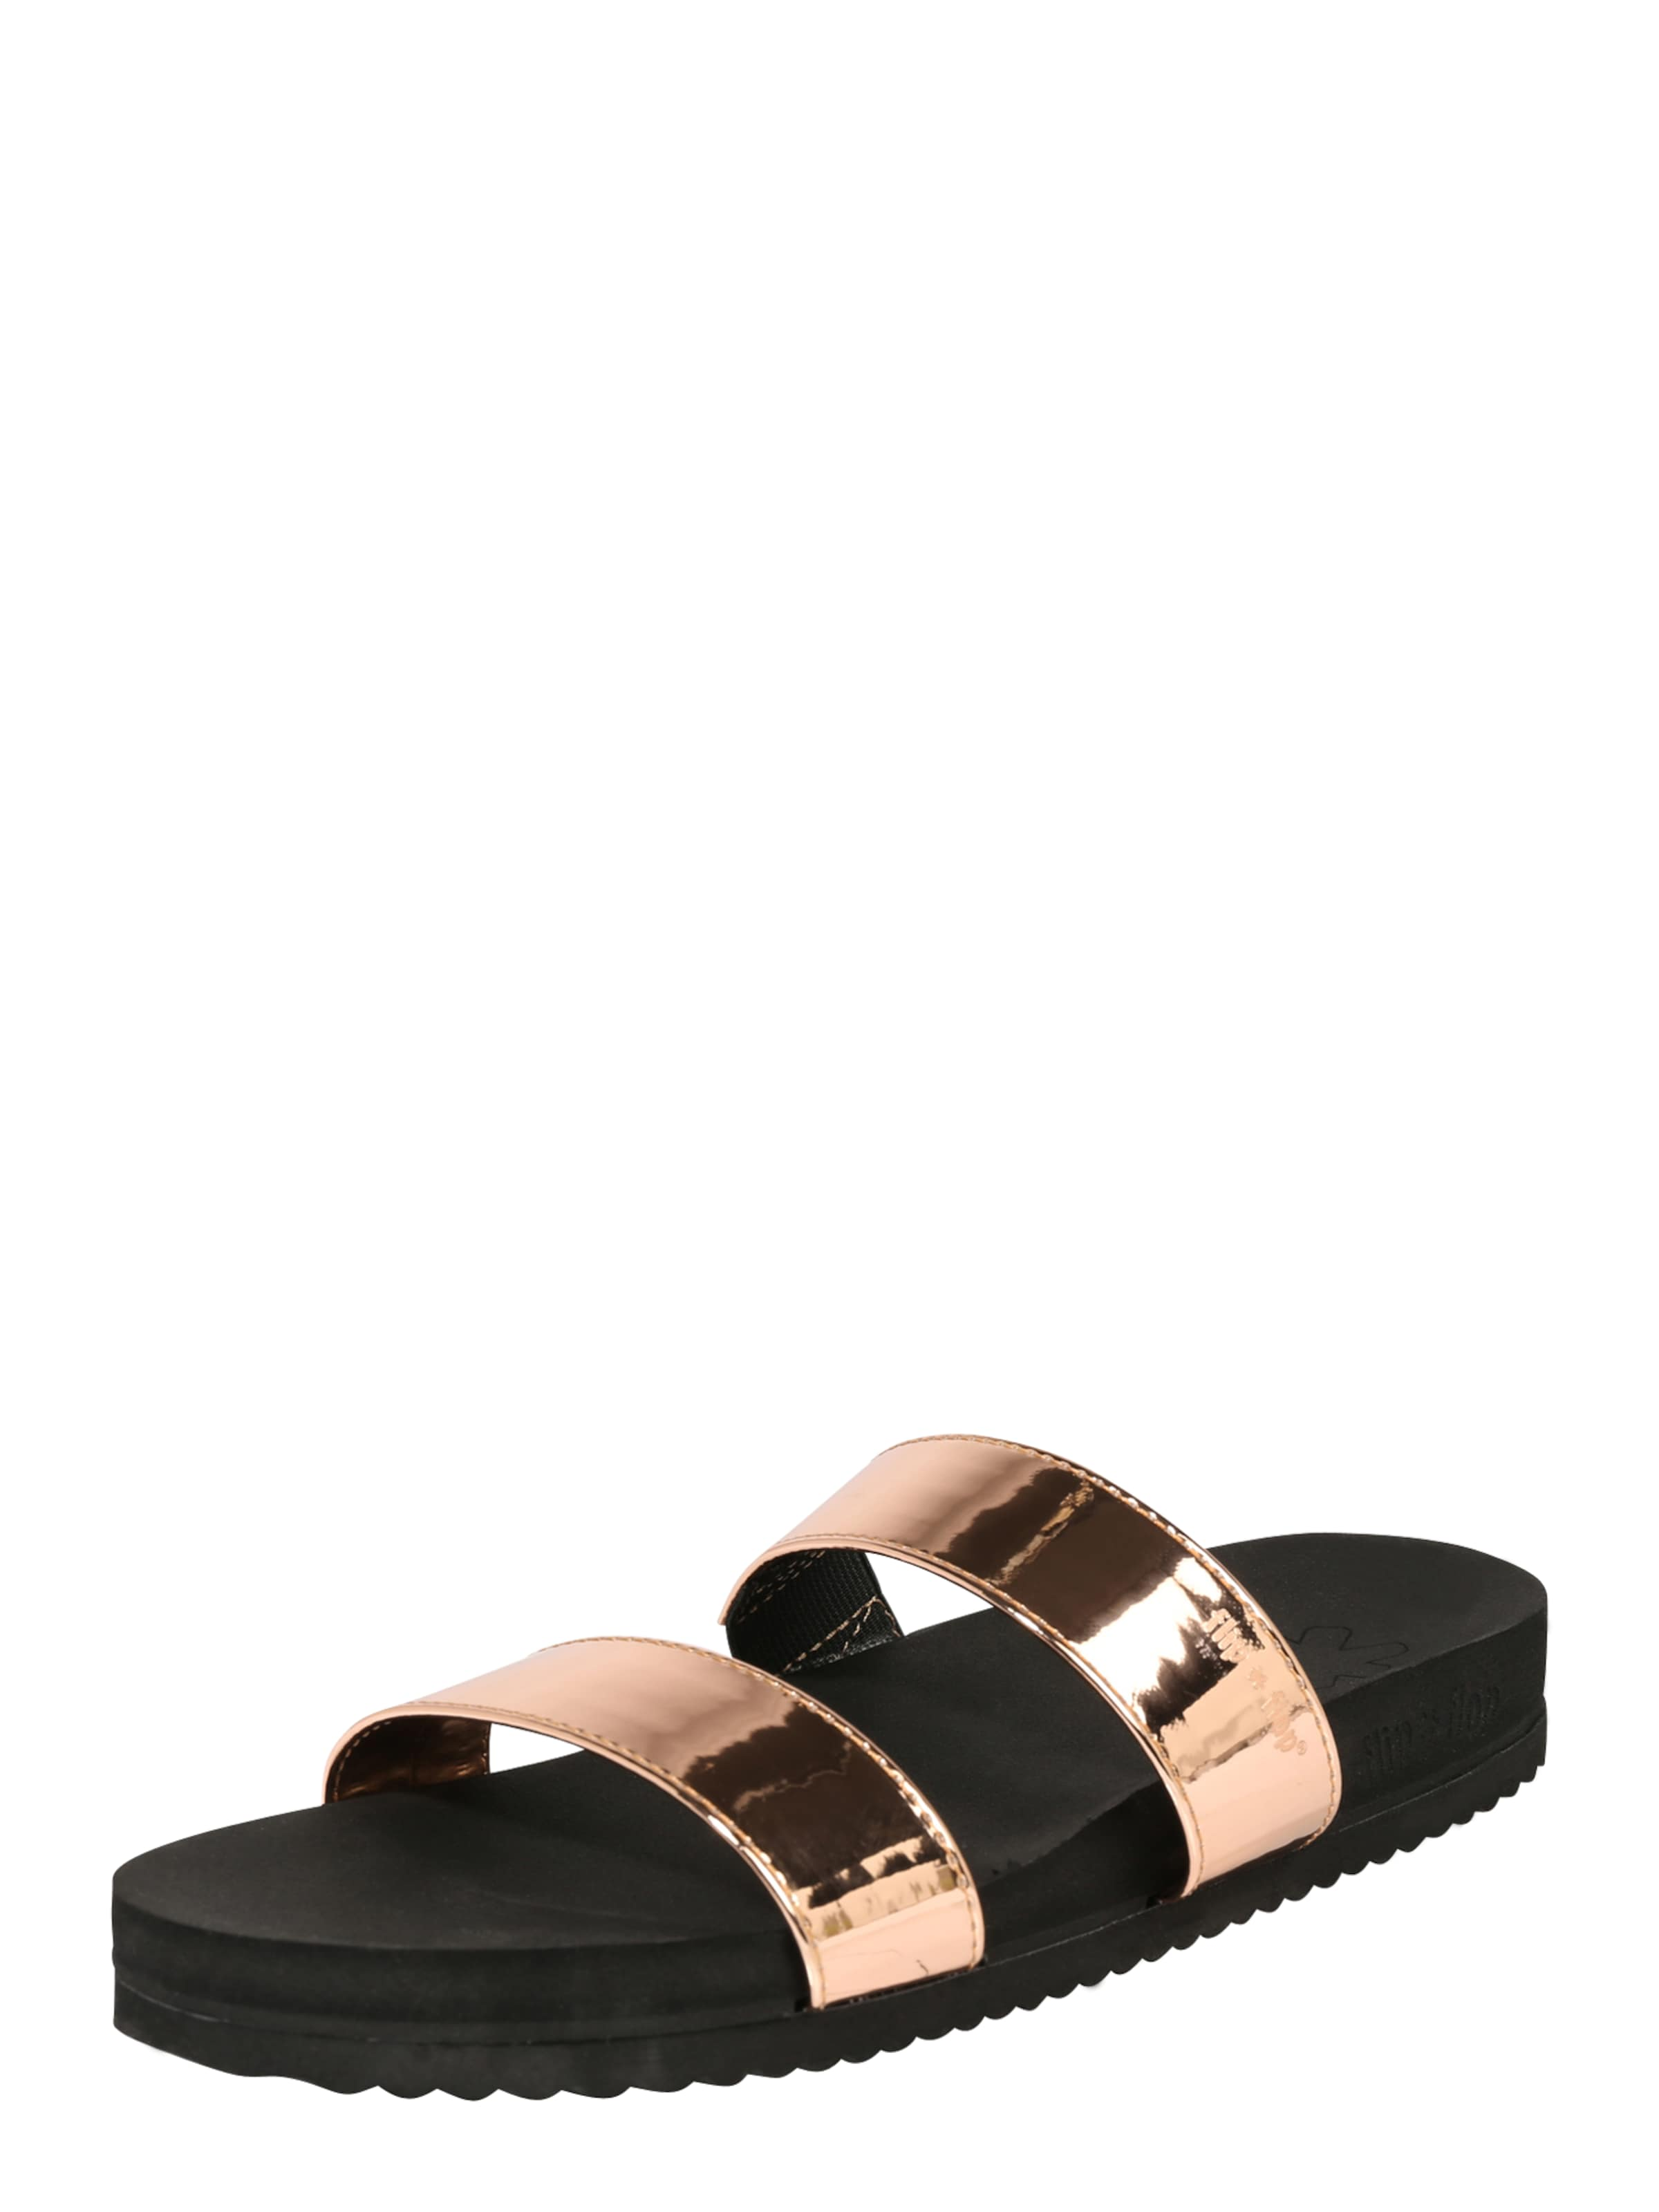 FLIP*FLOP Slides  double strap mirrow